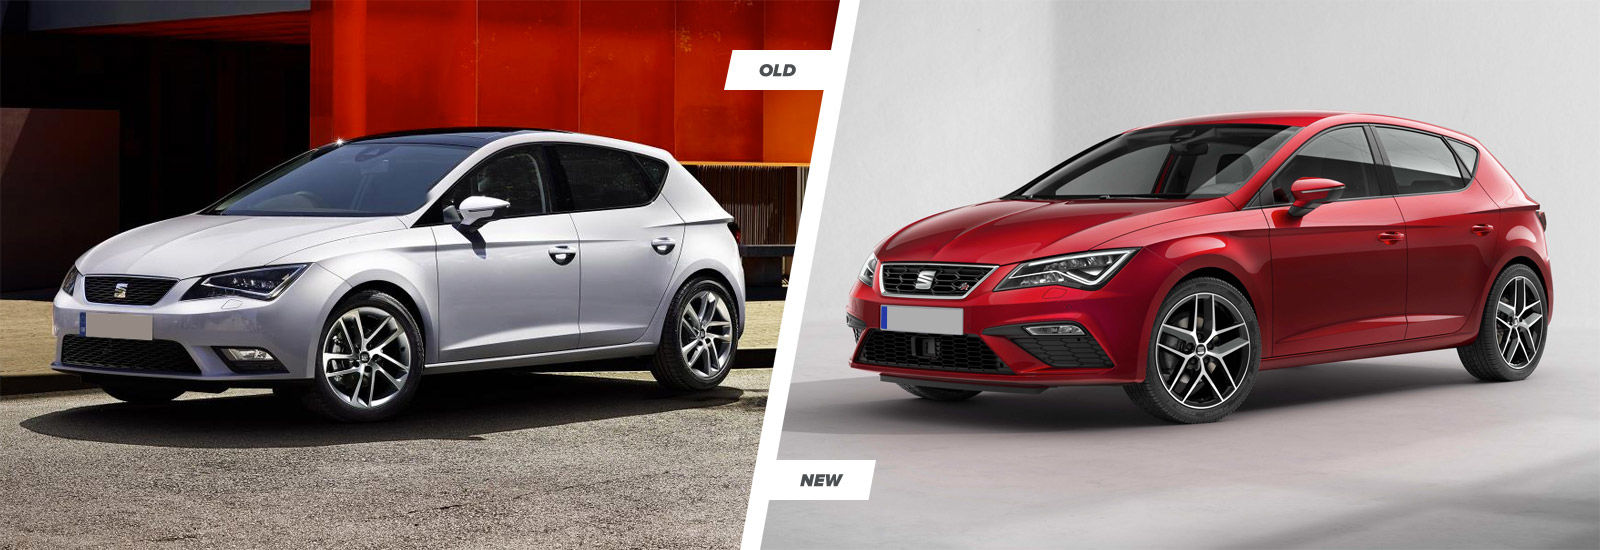 seat leon 5f facelift 2017 verschillen. Black Bedroom Furniture Sets. Home Design Ideas